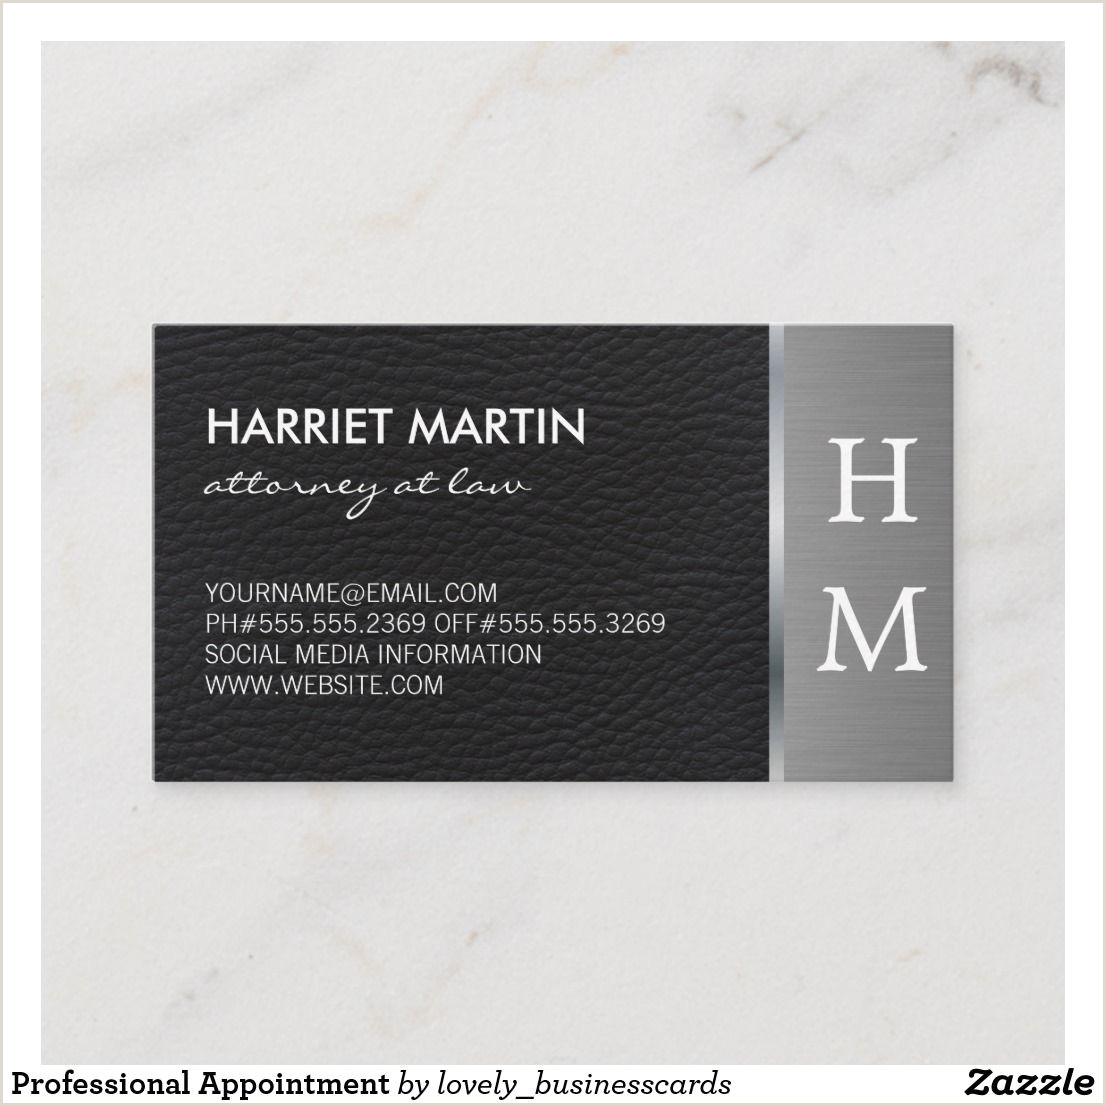 Business Card Social Media Professional Appointment Zazzle